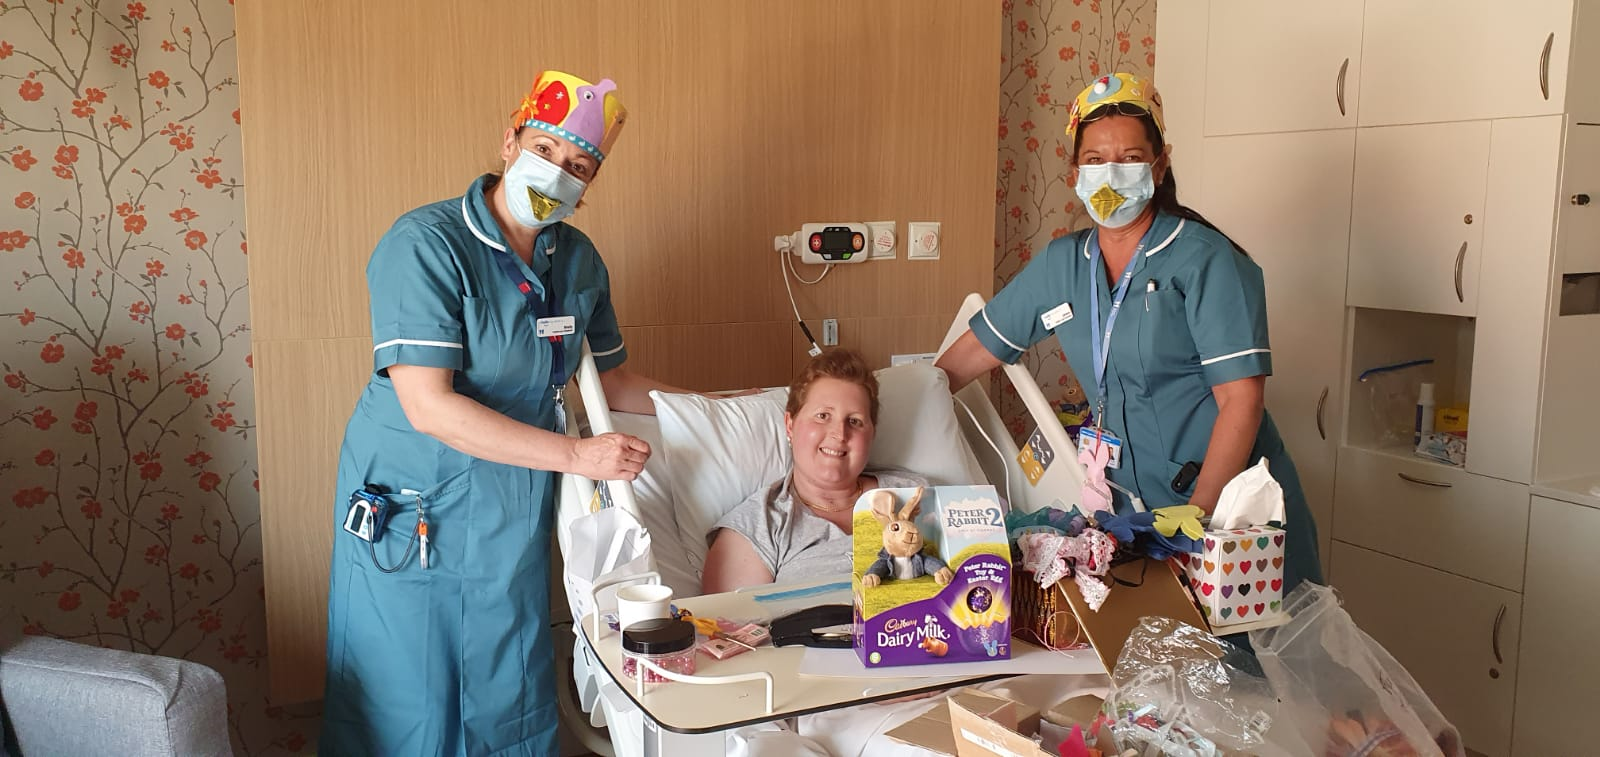 Amanda in a hospital bed with 2 nurses and an Easter Egg